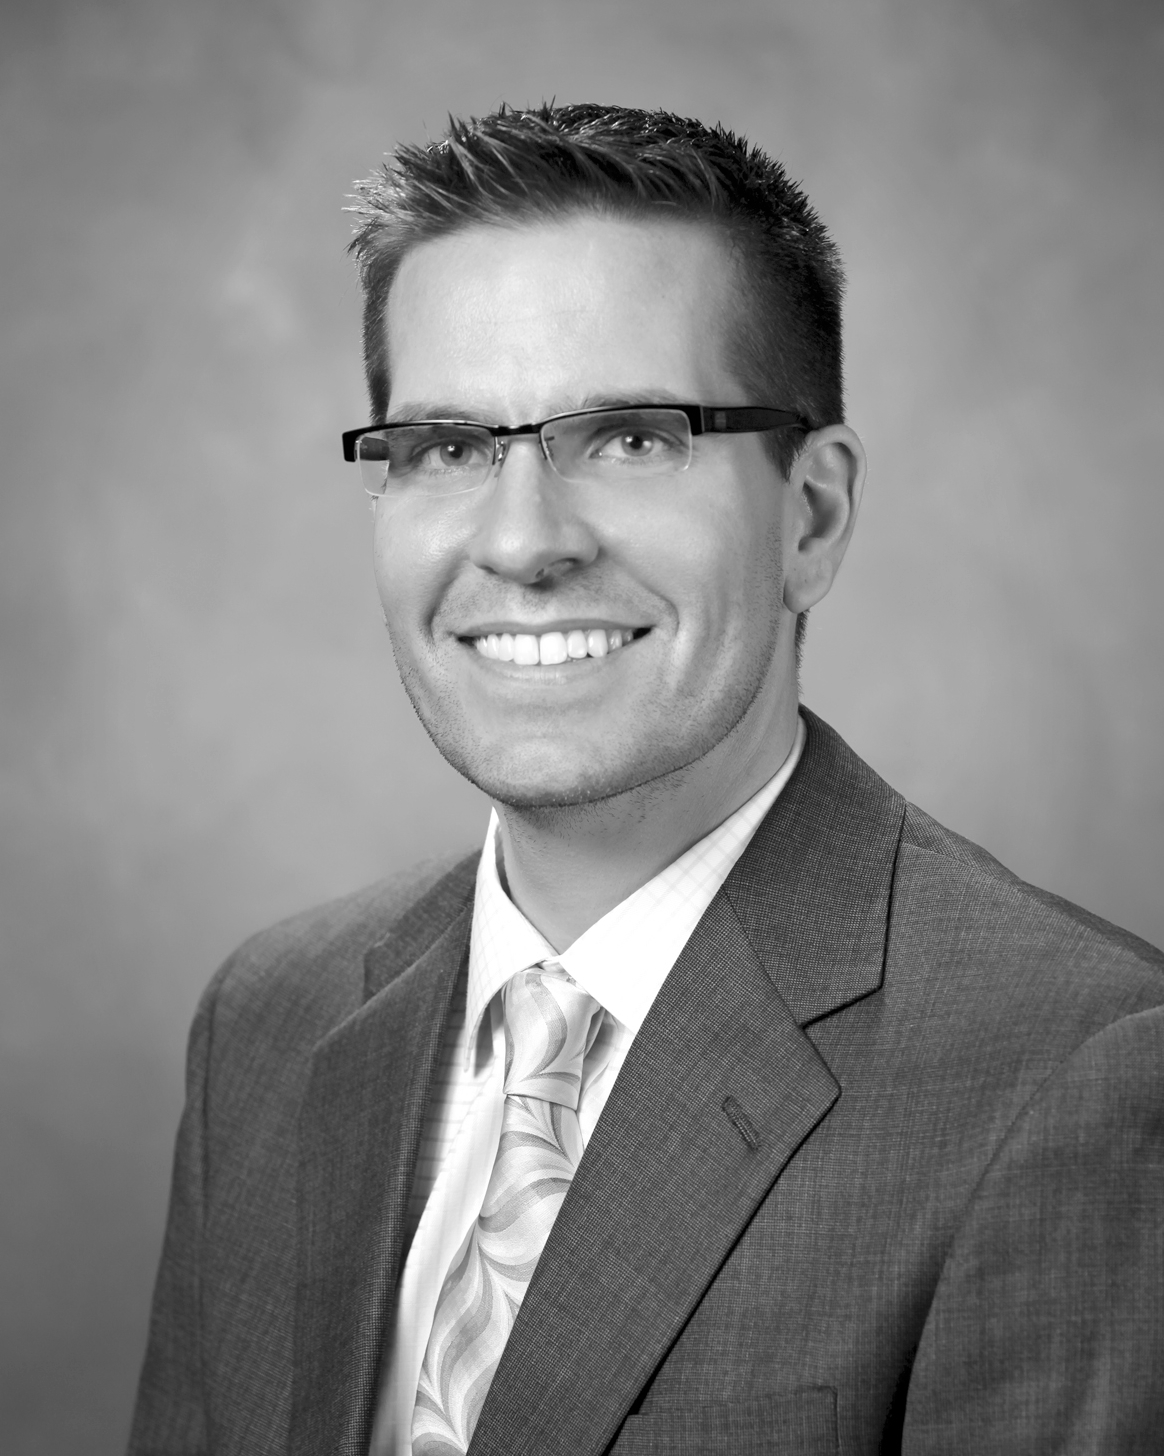 Paul Klimo JR., BS, MD, MPH